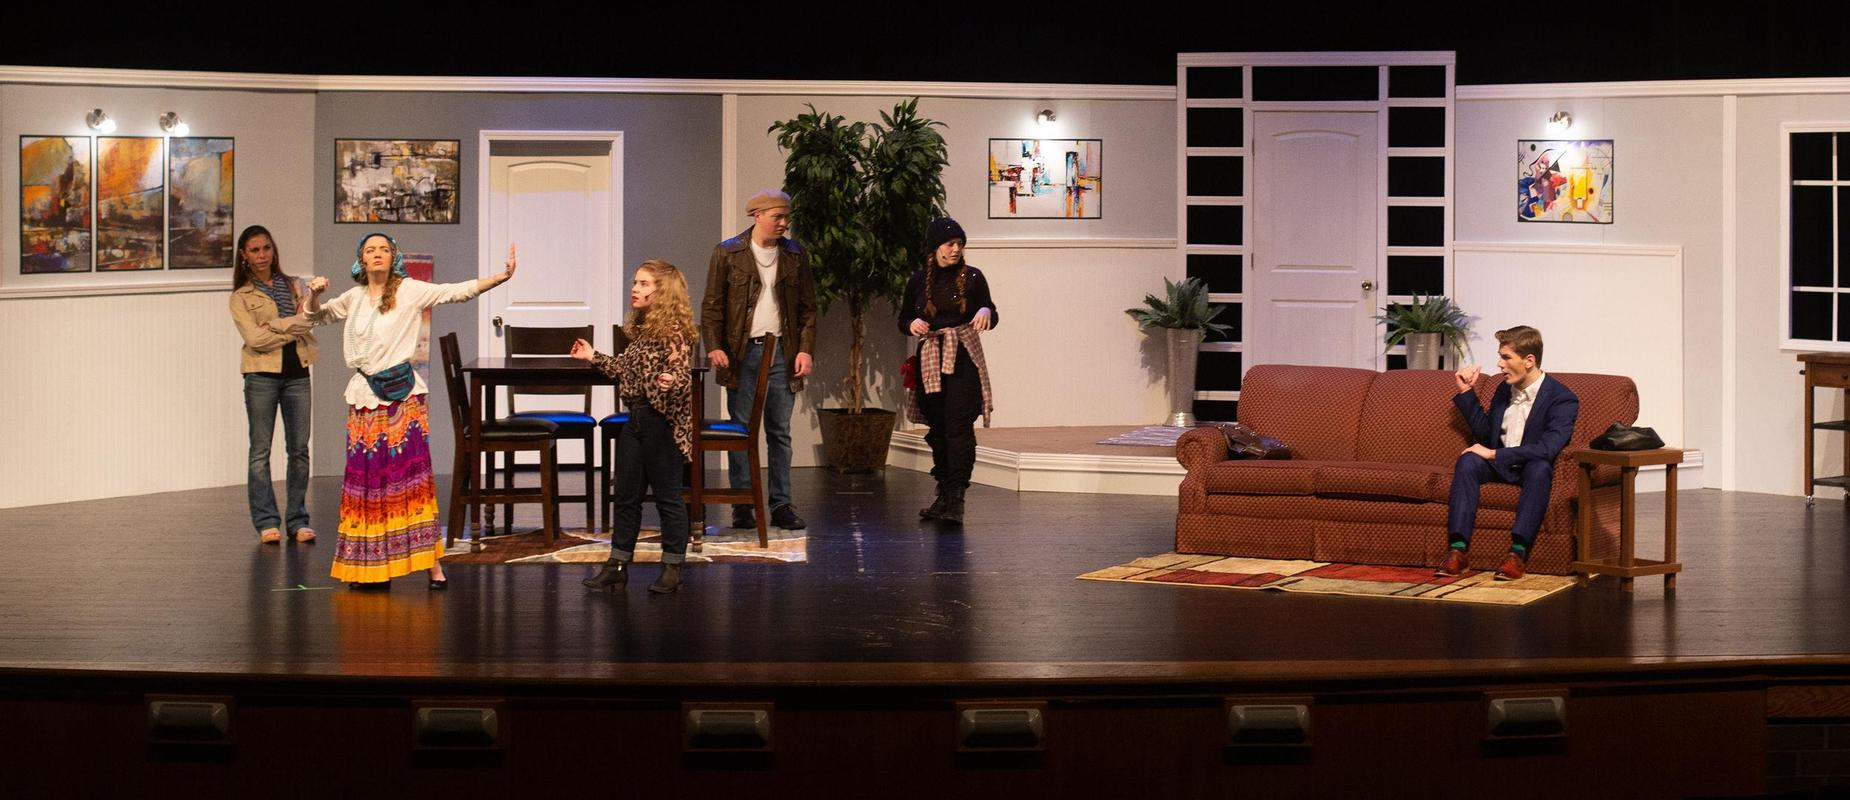 cast of six high school students acts out You Can't Beat the House play on stage